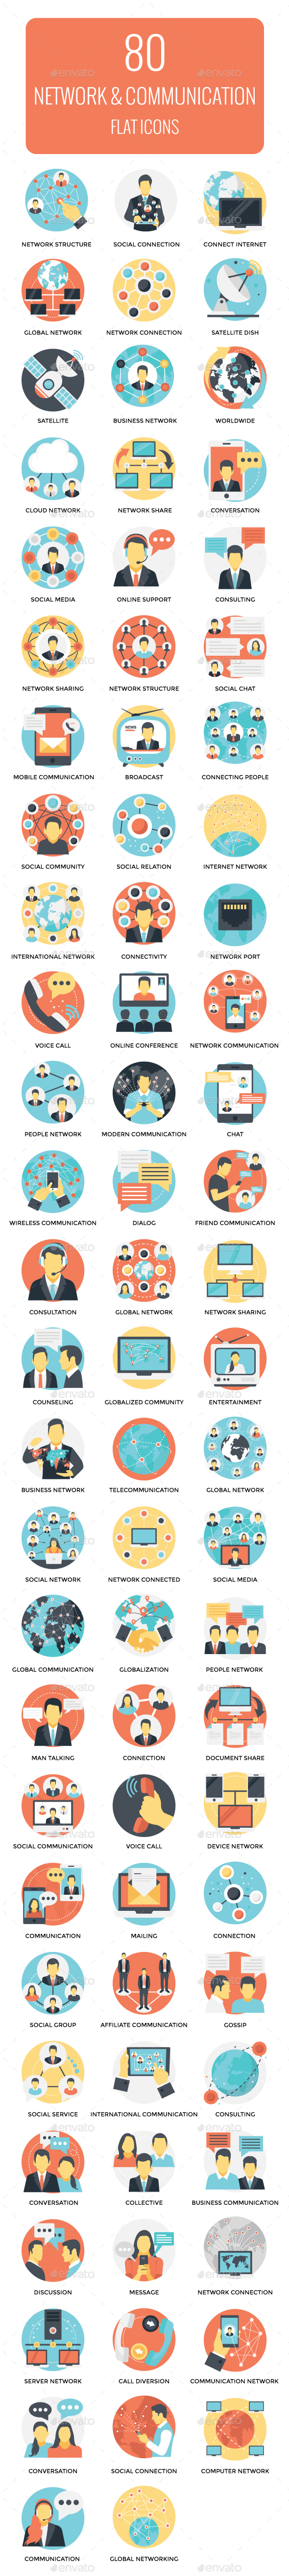 GraphicRiver 80 Networking and Communication Icon 21100717